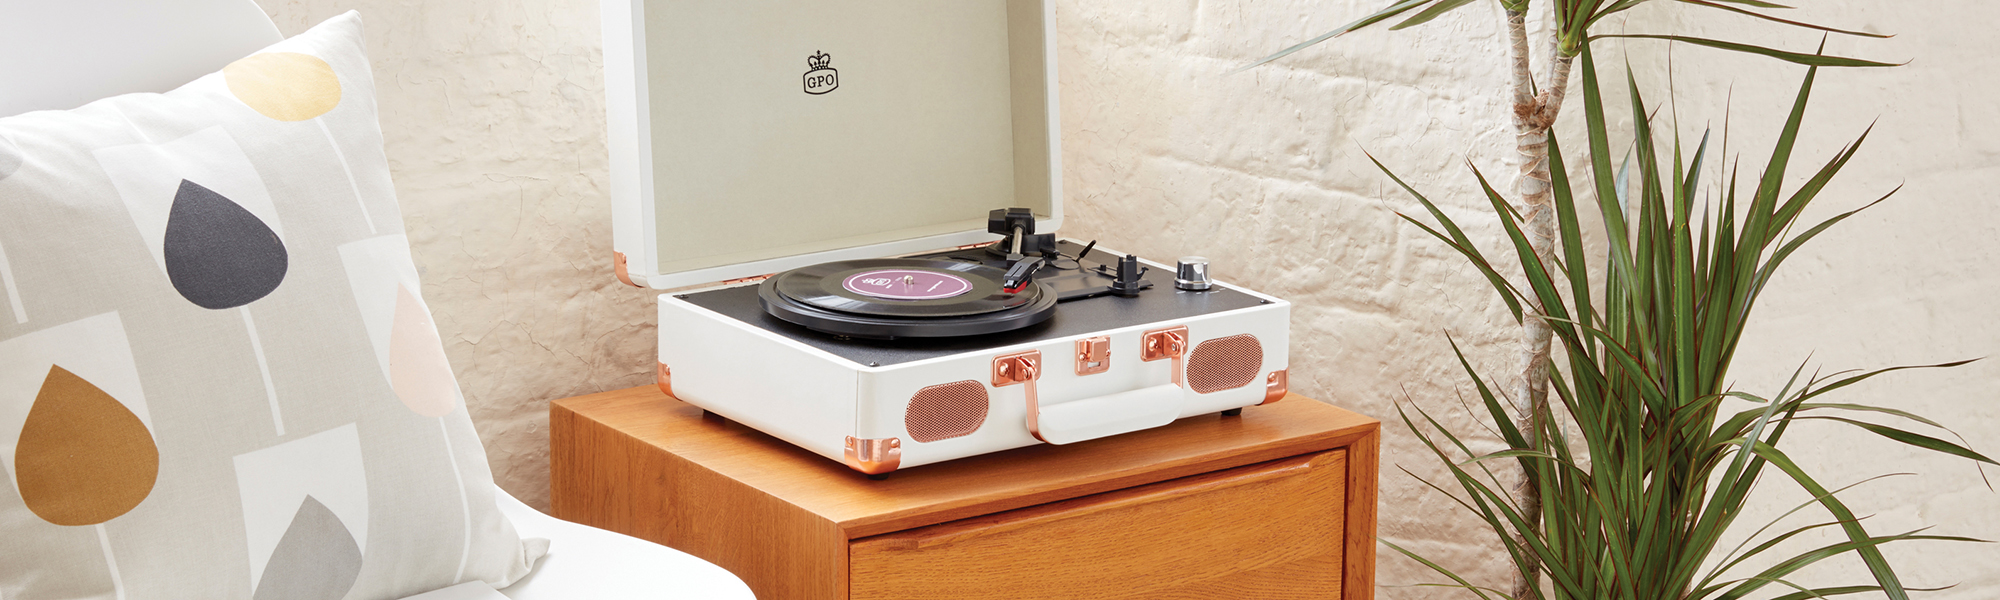 Old Fashioned Music Player | Old Turntable